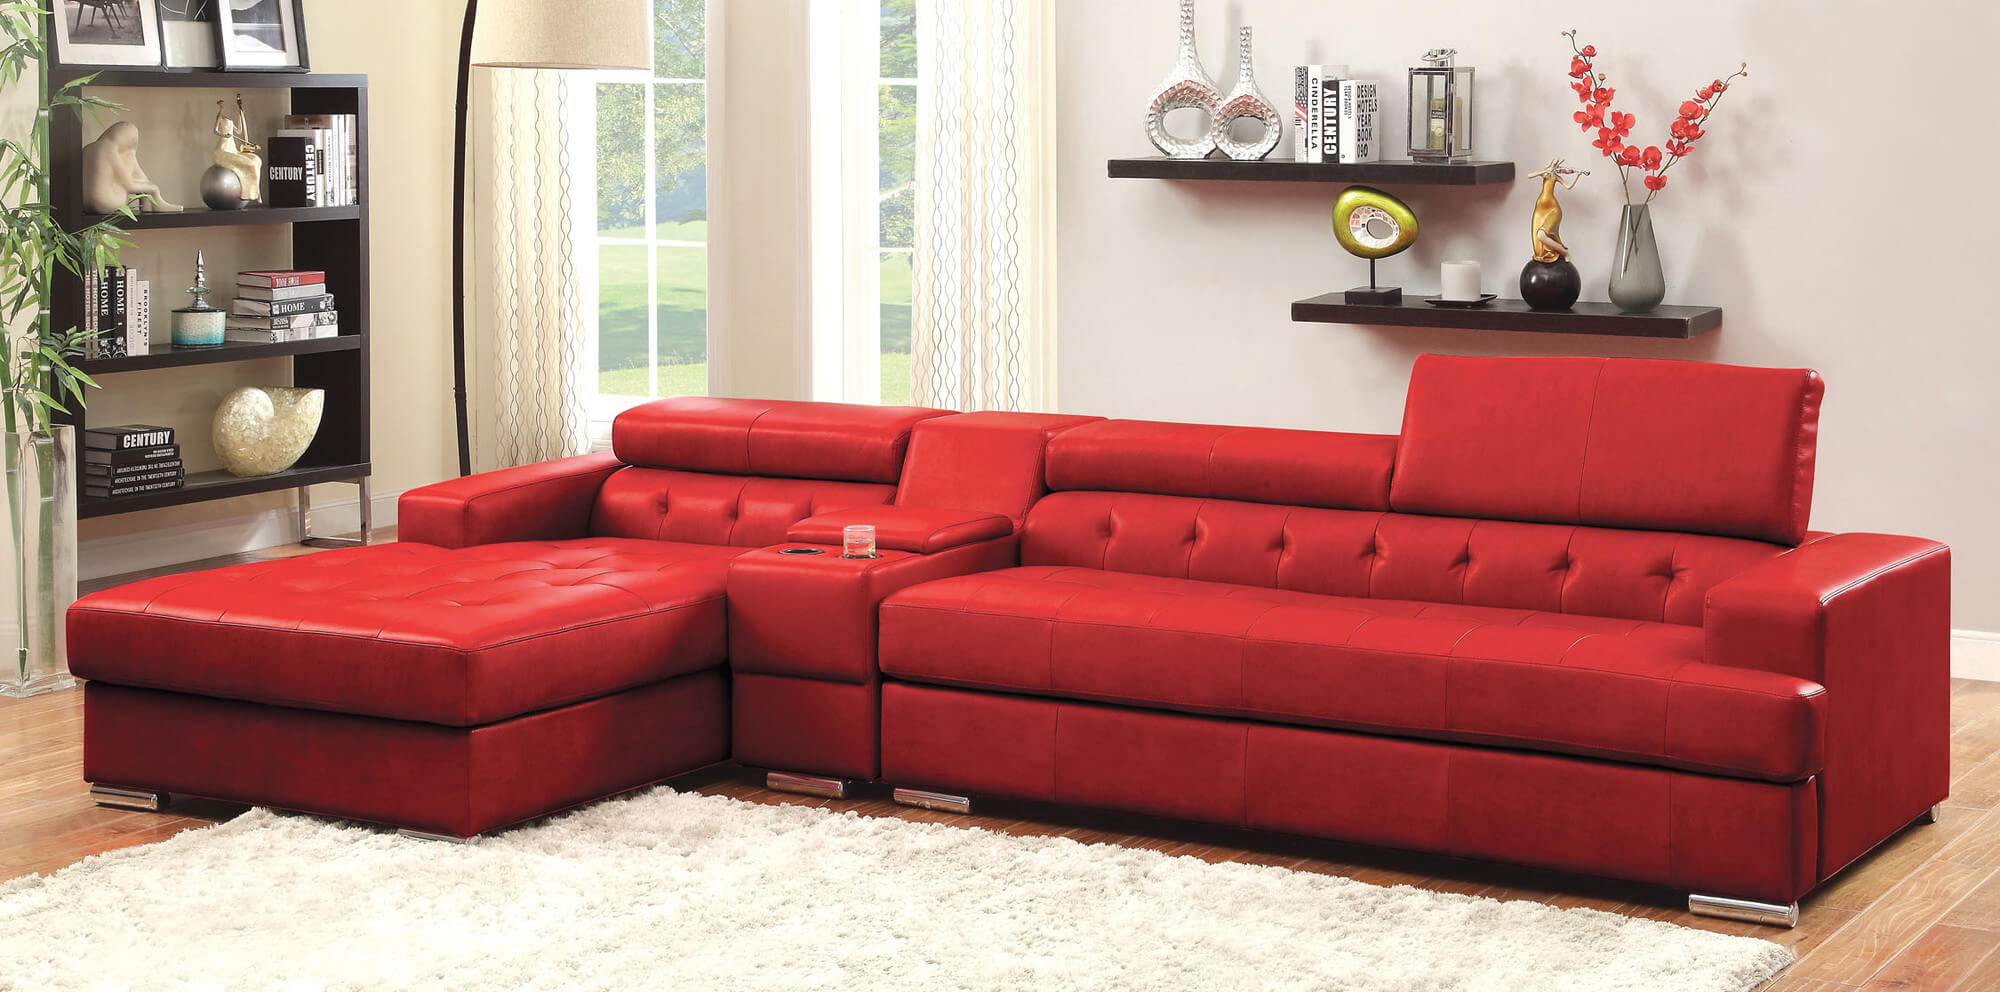 red sofa sectional drawing room designs india 18 stylish modern sofas